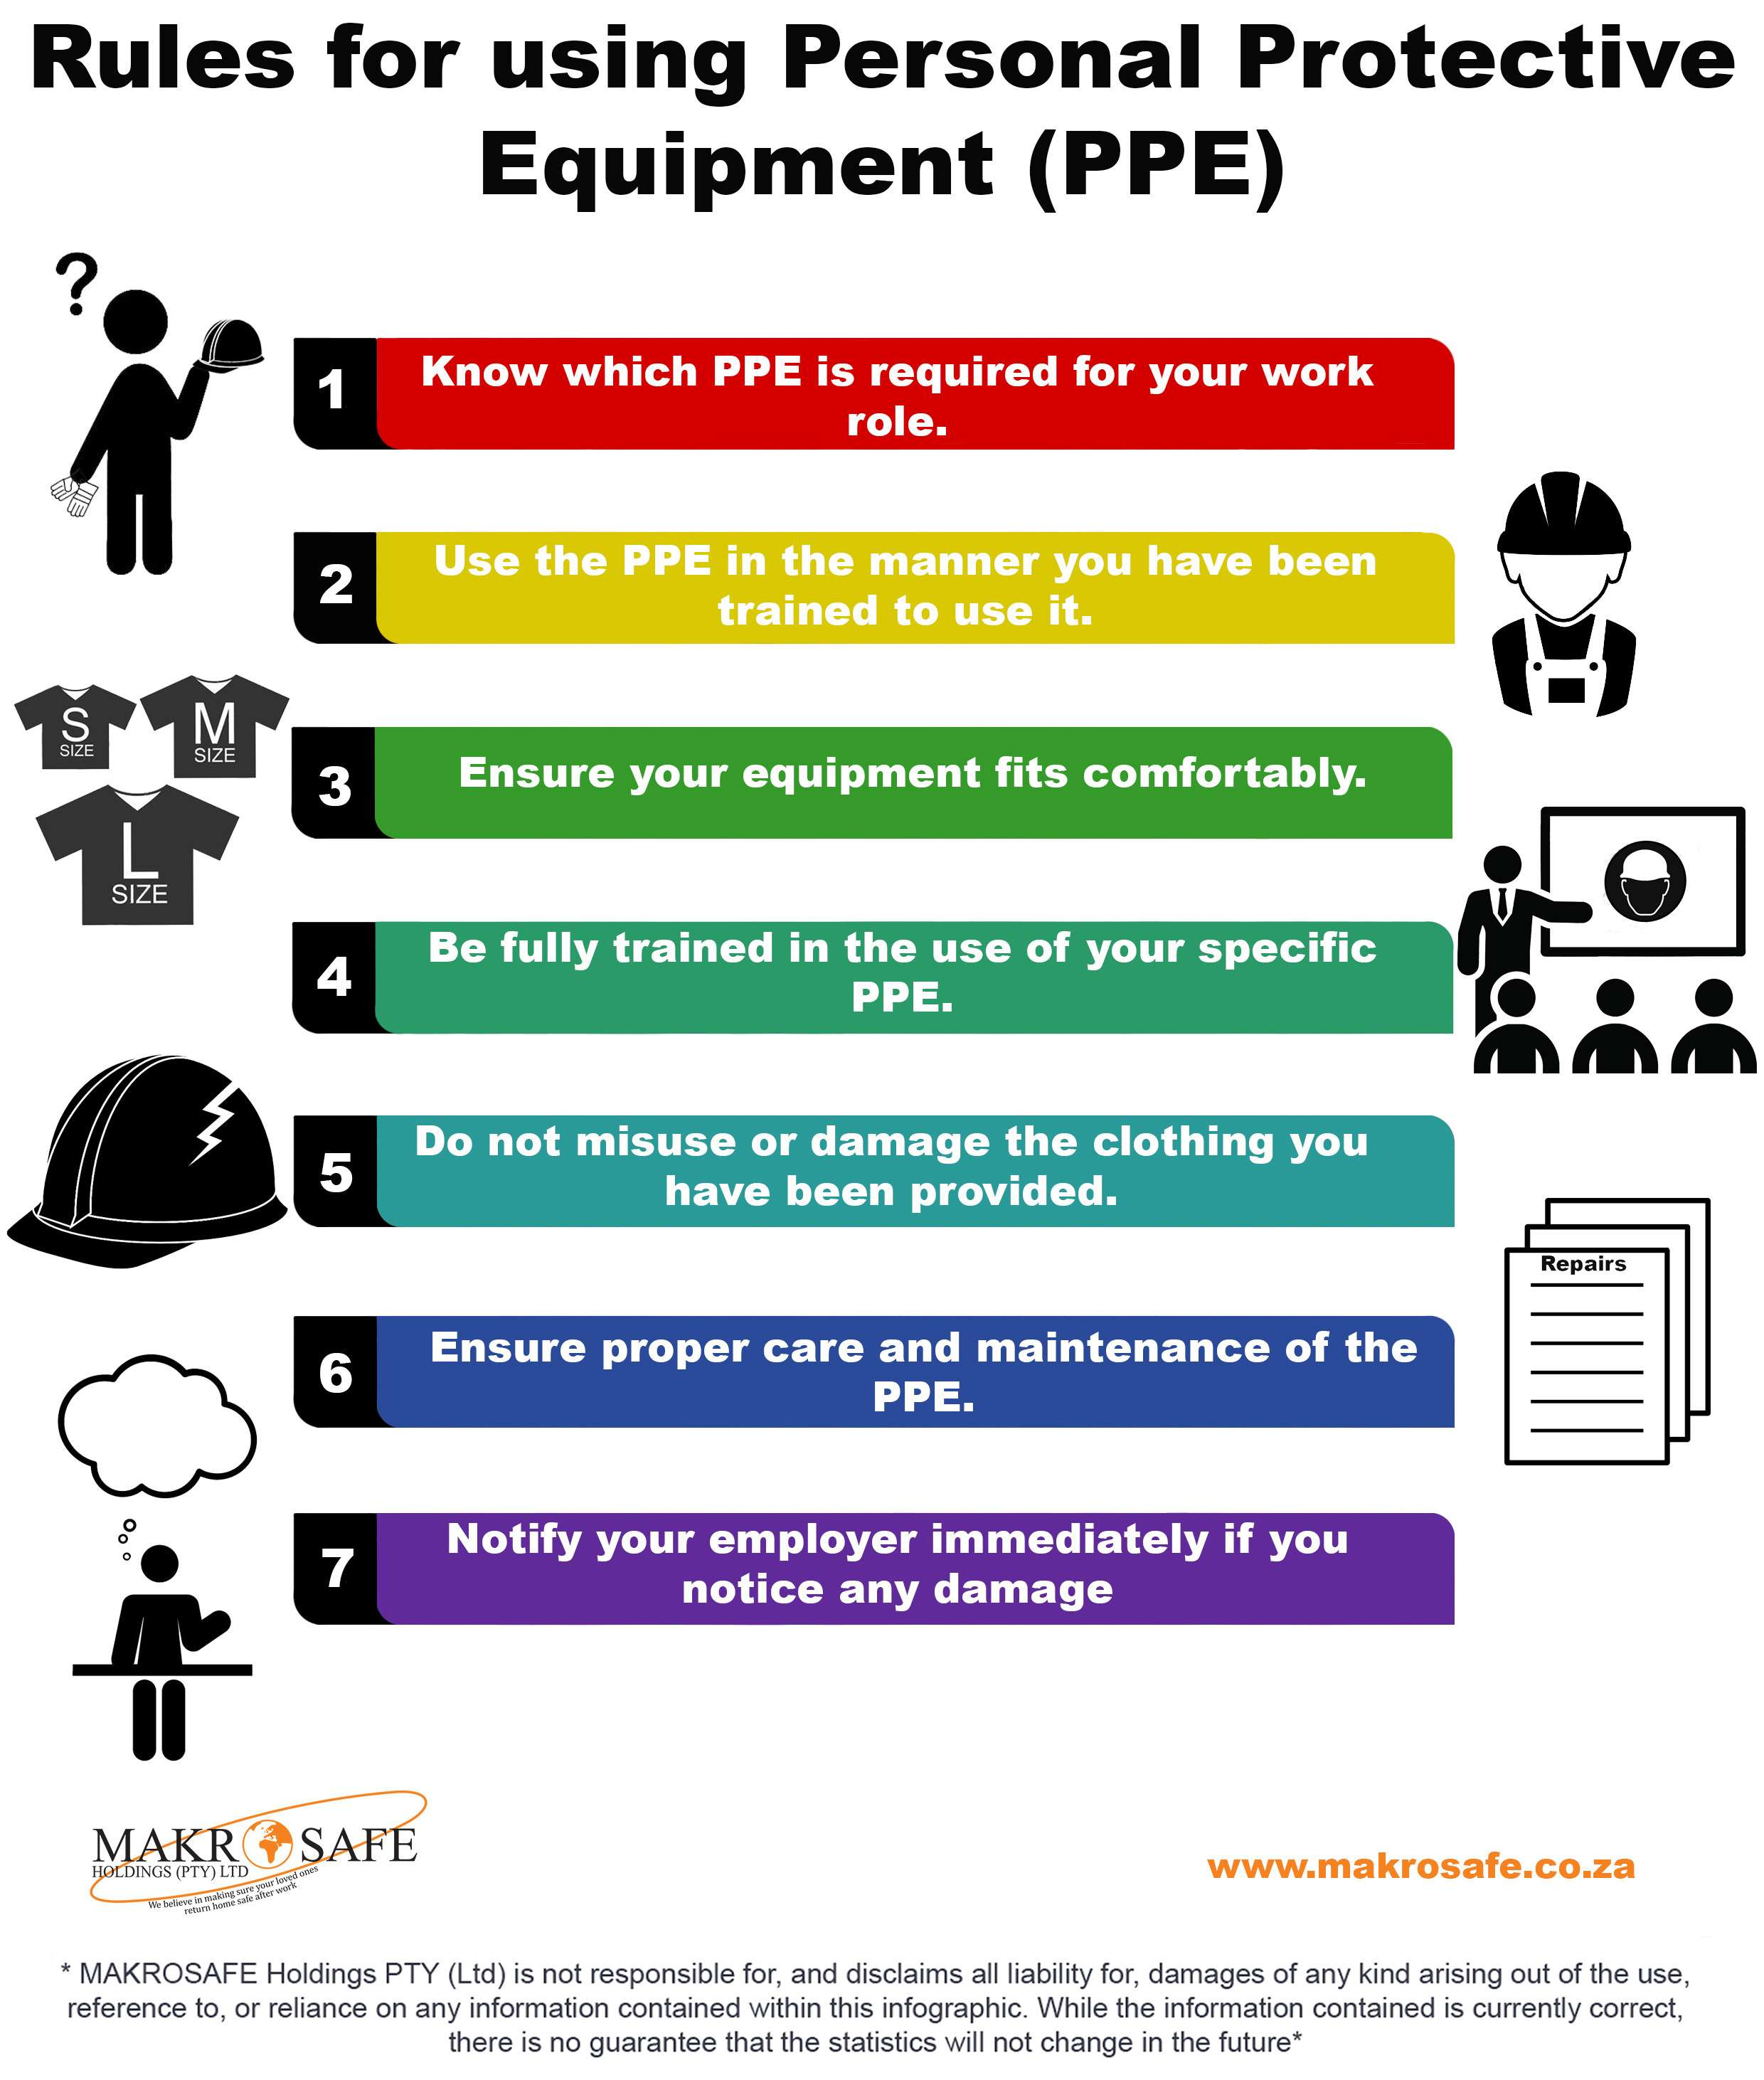 Rules for using Personal Protective Equipment - Airline Aviation